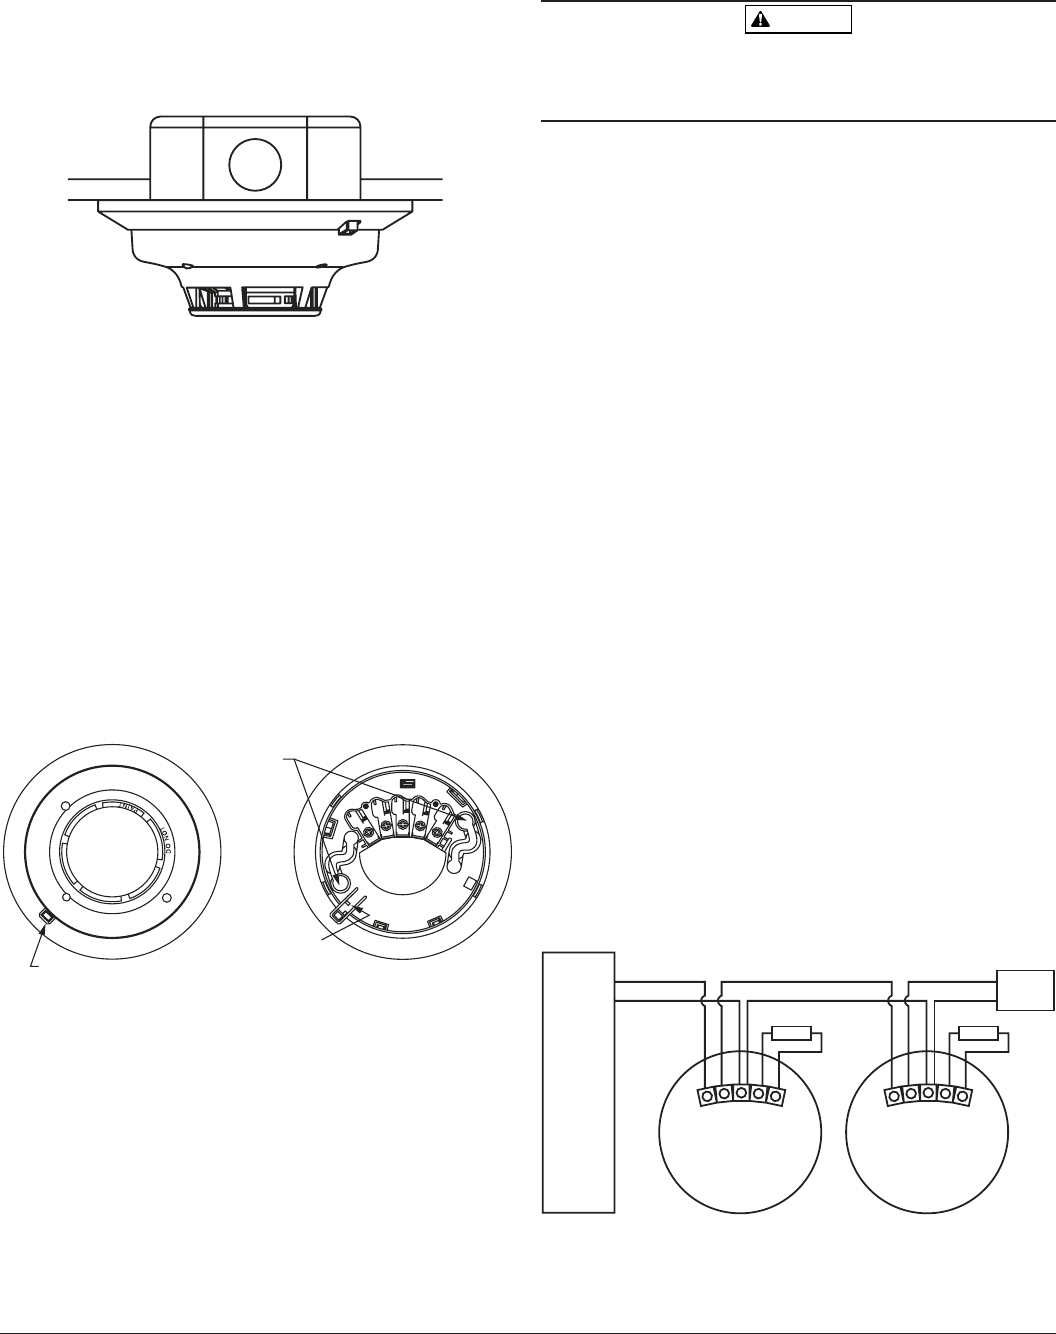 system sensor smoke detector connection diagram system page 2 of system sensor smoke alarm 2w b user guide on system sensor smoke detector smoke alarm wiring diagram